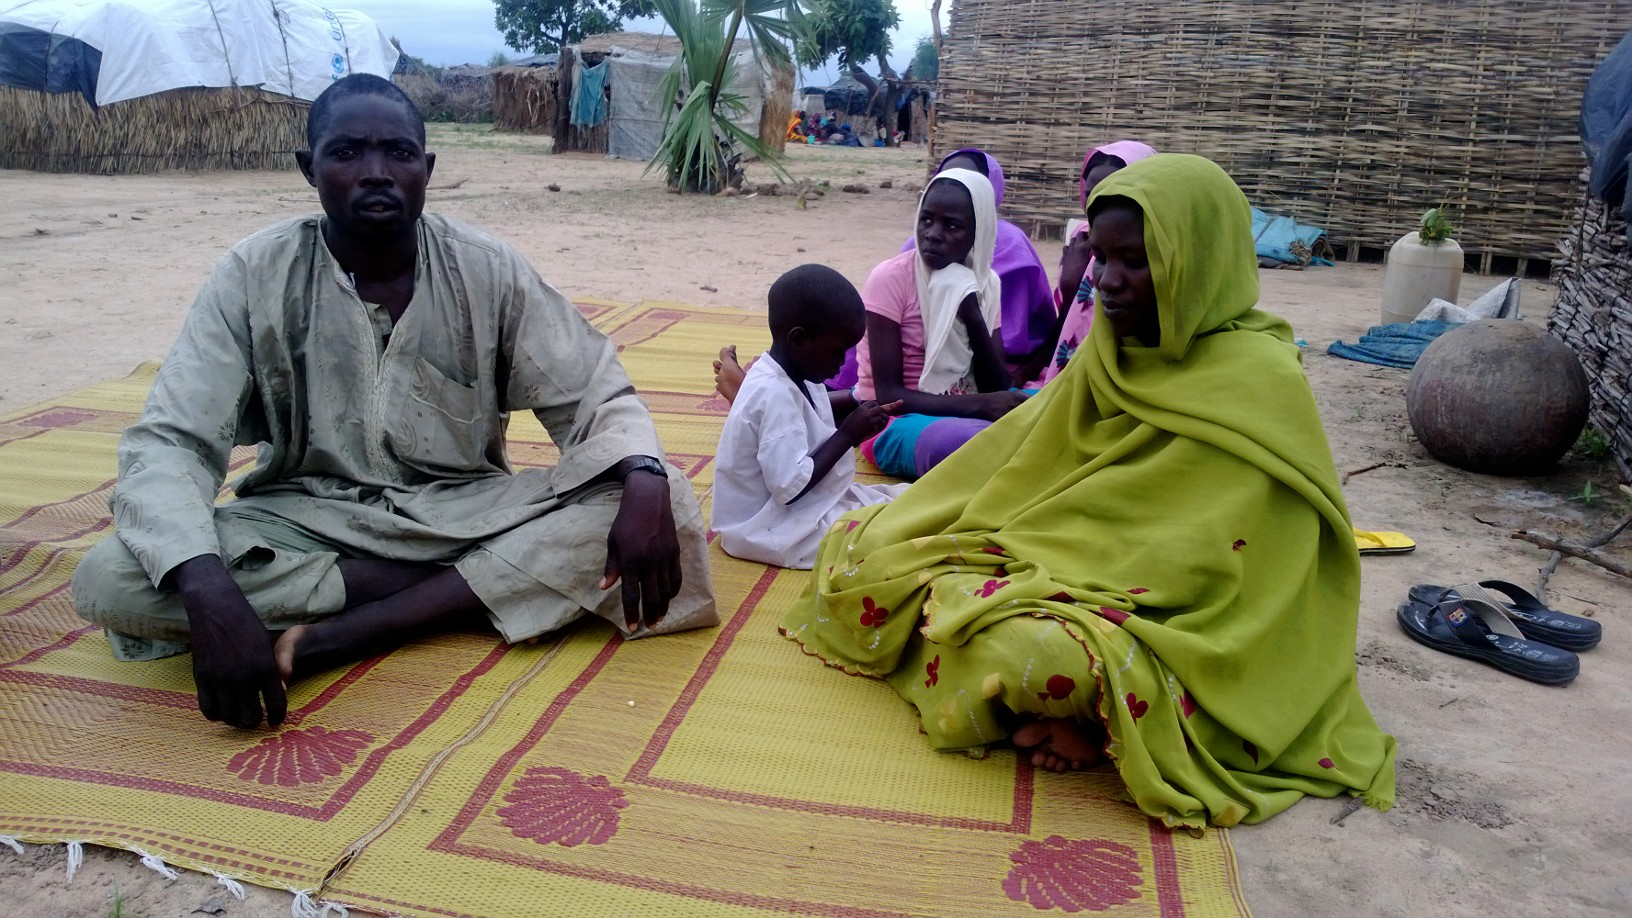 Mahamat Haroun Dahab and part of his family in the southern Chad village of Tadjou, in Tissi. Tadjou is home to hundreds of Chadians who recently returned home after fleeing conflict in neighbouring Darfur